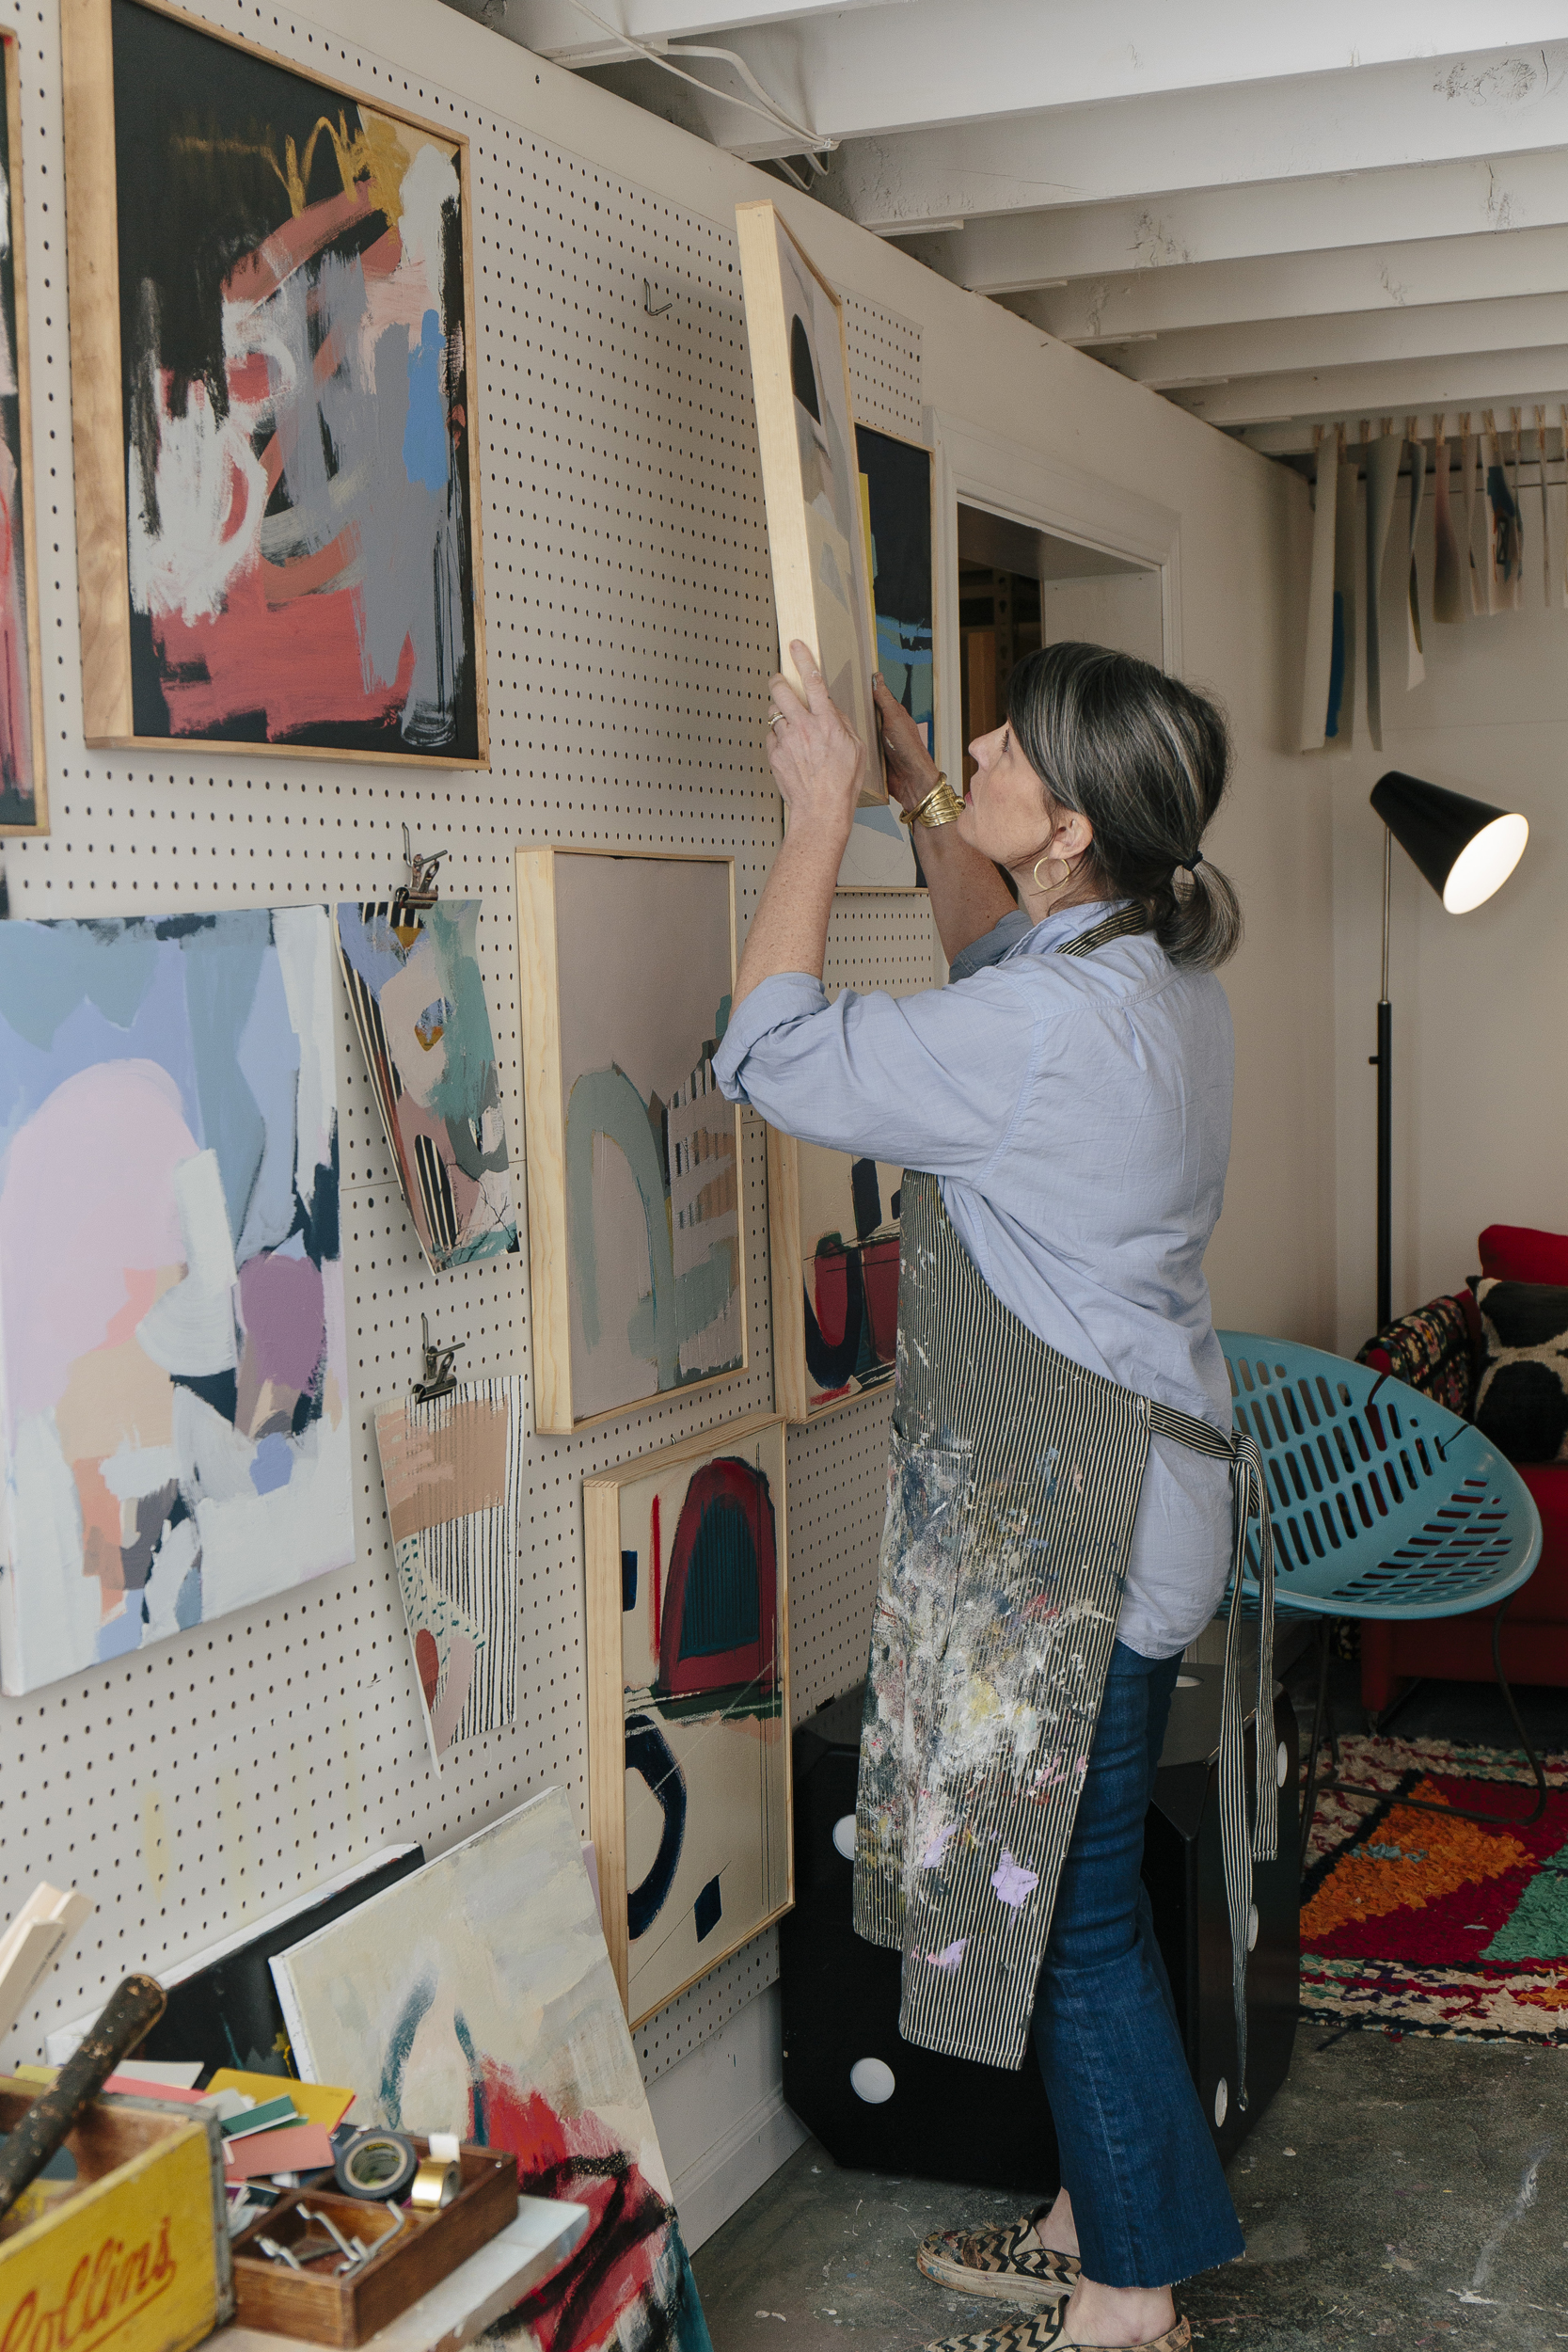 Jenny, hanging original work on her display wall. All her paintings and frames are made by hand in her vibrant, eclectic home studio. Find her work at  Jenny Prinn  or at  Serena & Lily .